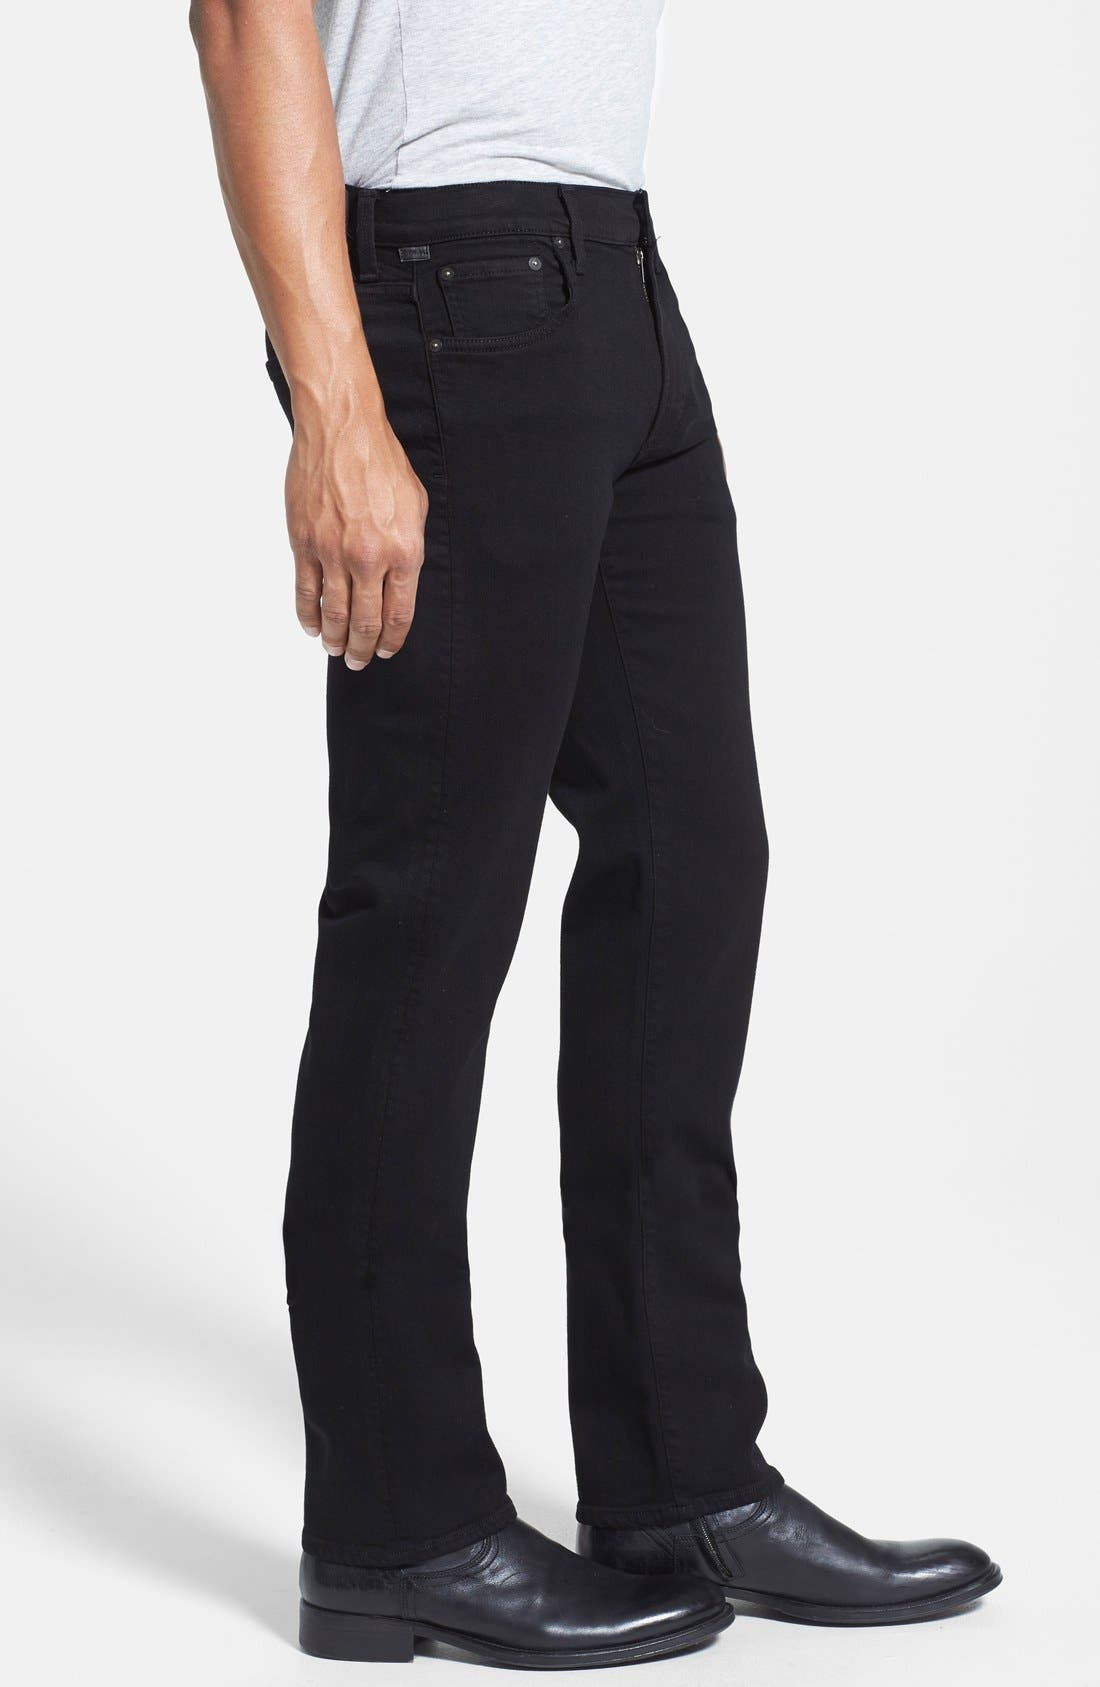 Alternate Image 3  - Citizens of Humanity 'Mod Comfort' Slim Fit Jeans (Dog Town)